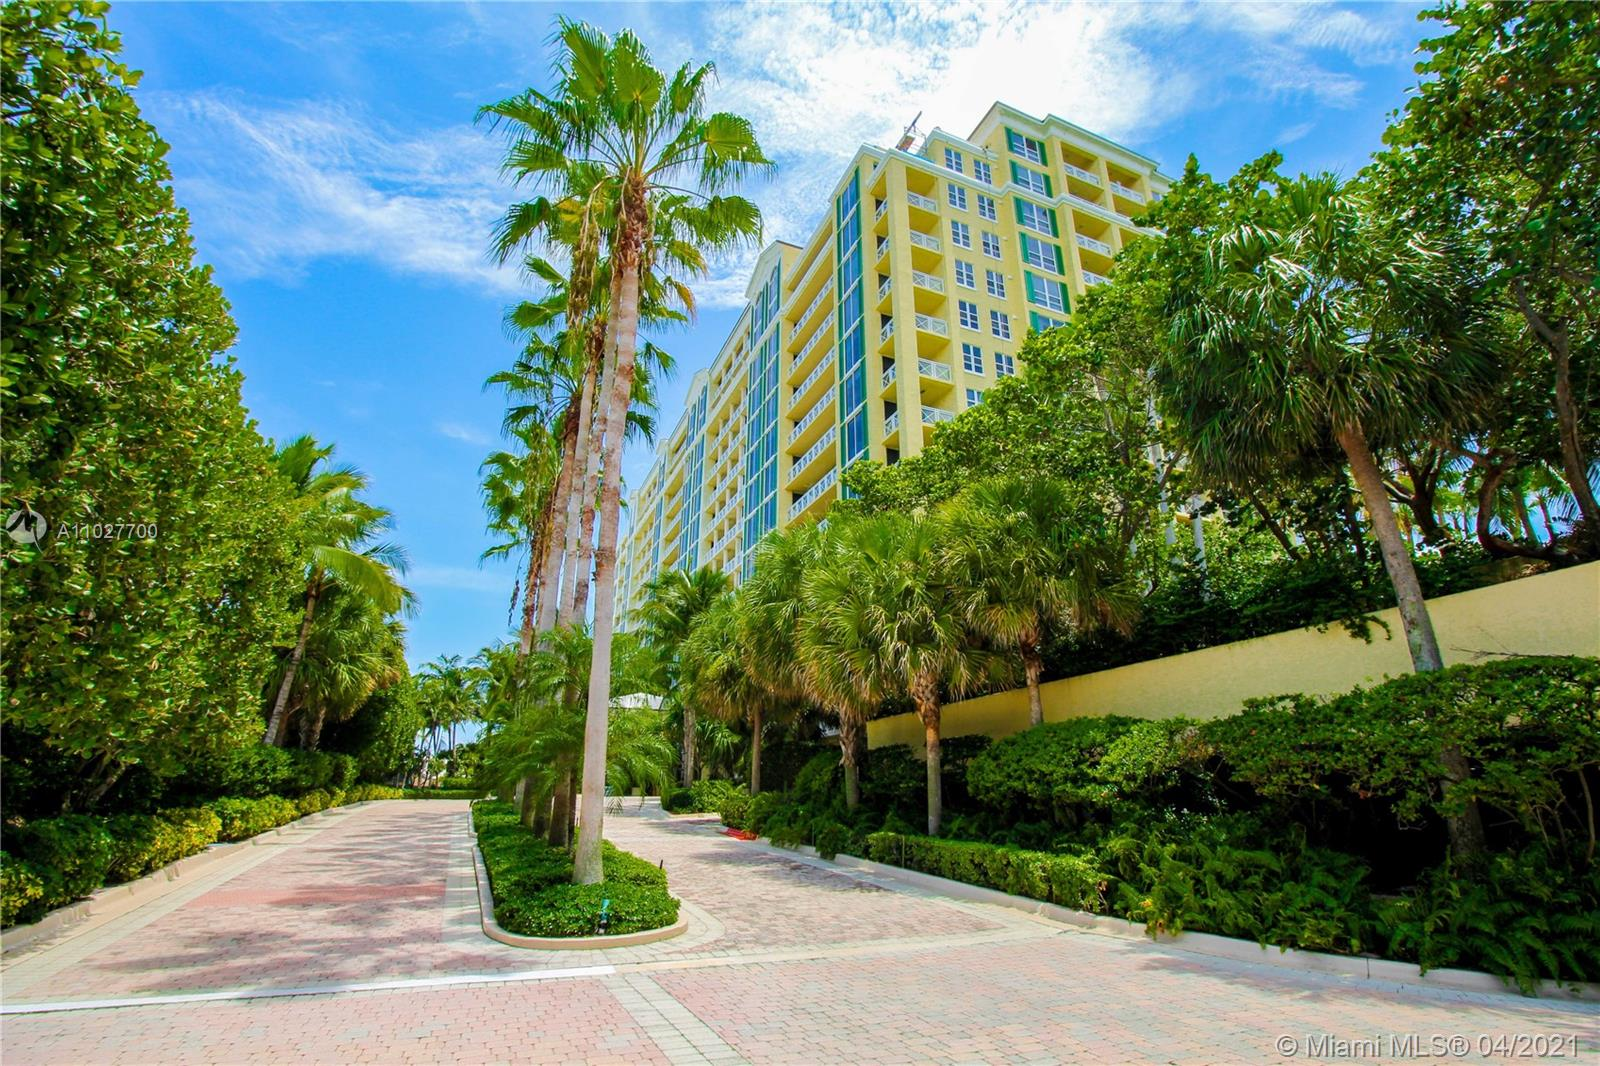 430 Grand Bay Dr Unit 808, Key Biscayne, Florida 33149